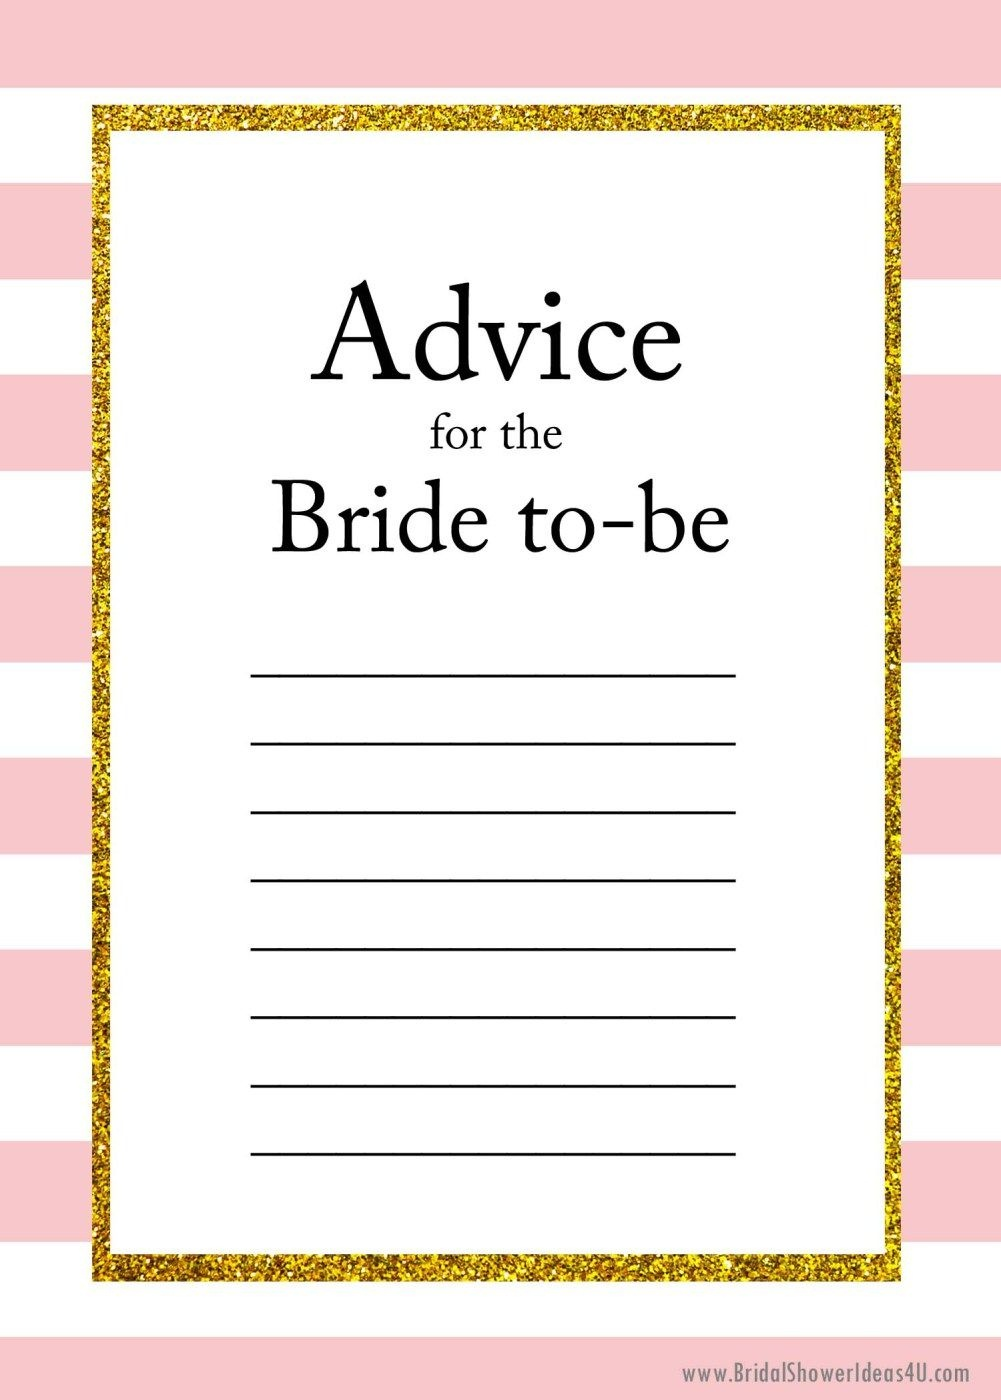 Free Printable Advice For The Bride To Be Cards | Friendship | Bride - Free Printable Advice Cards For Baby Shower Template